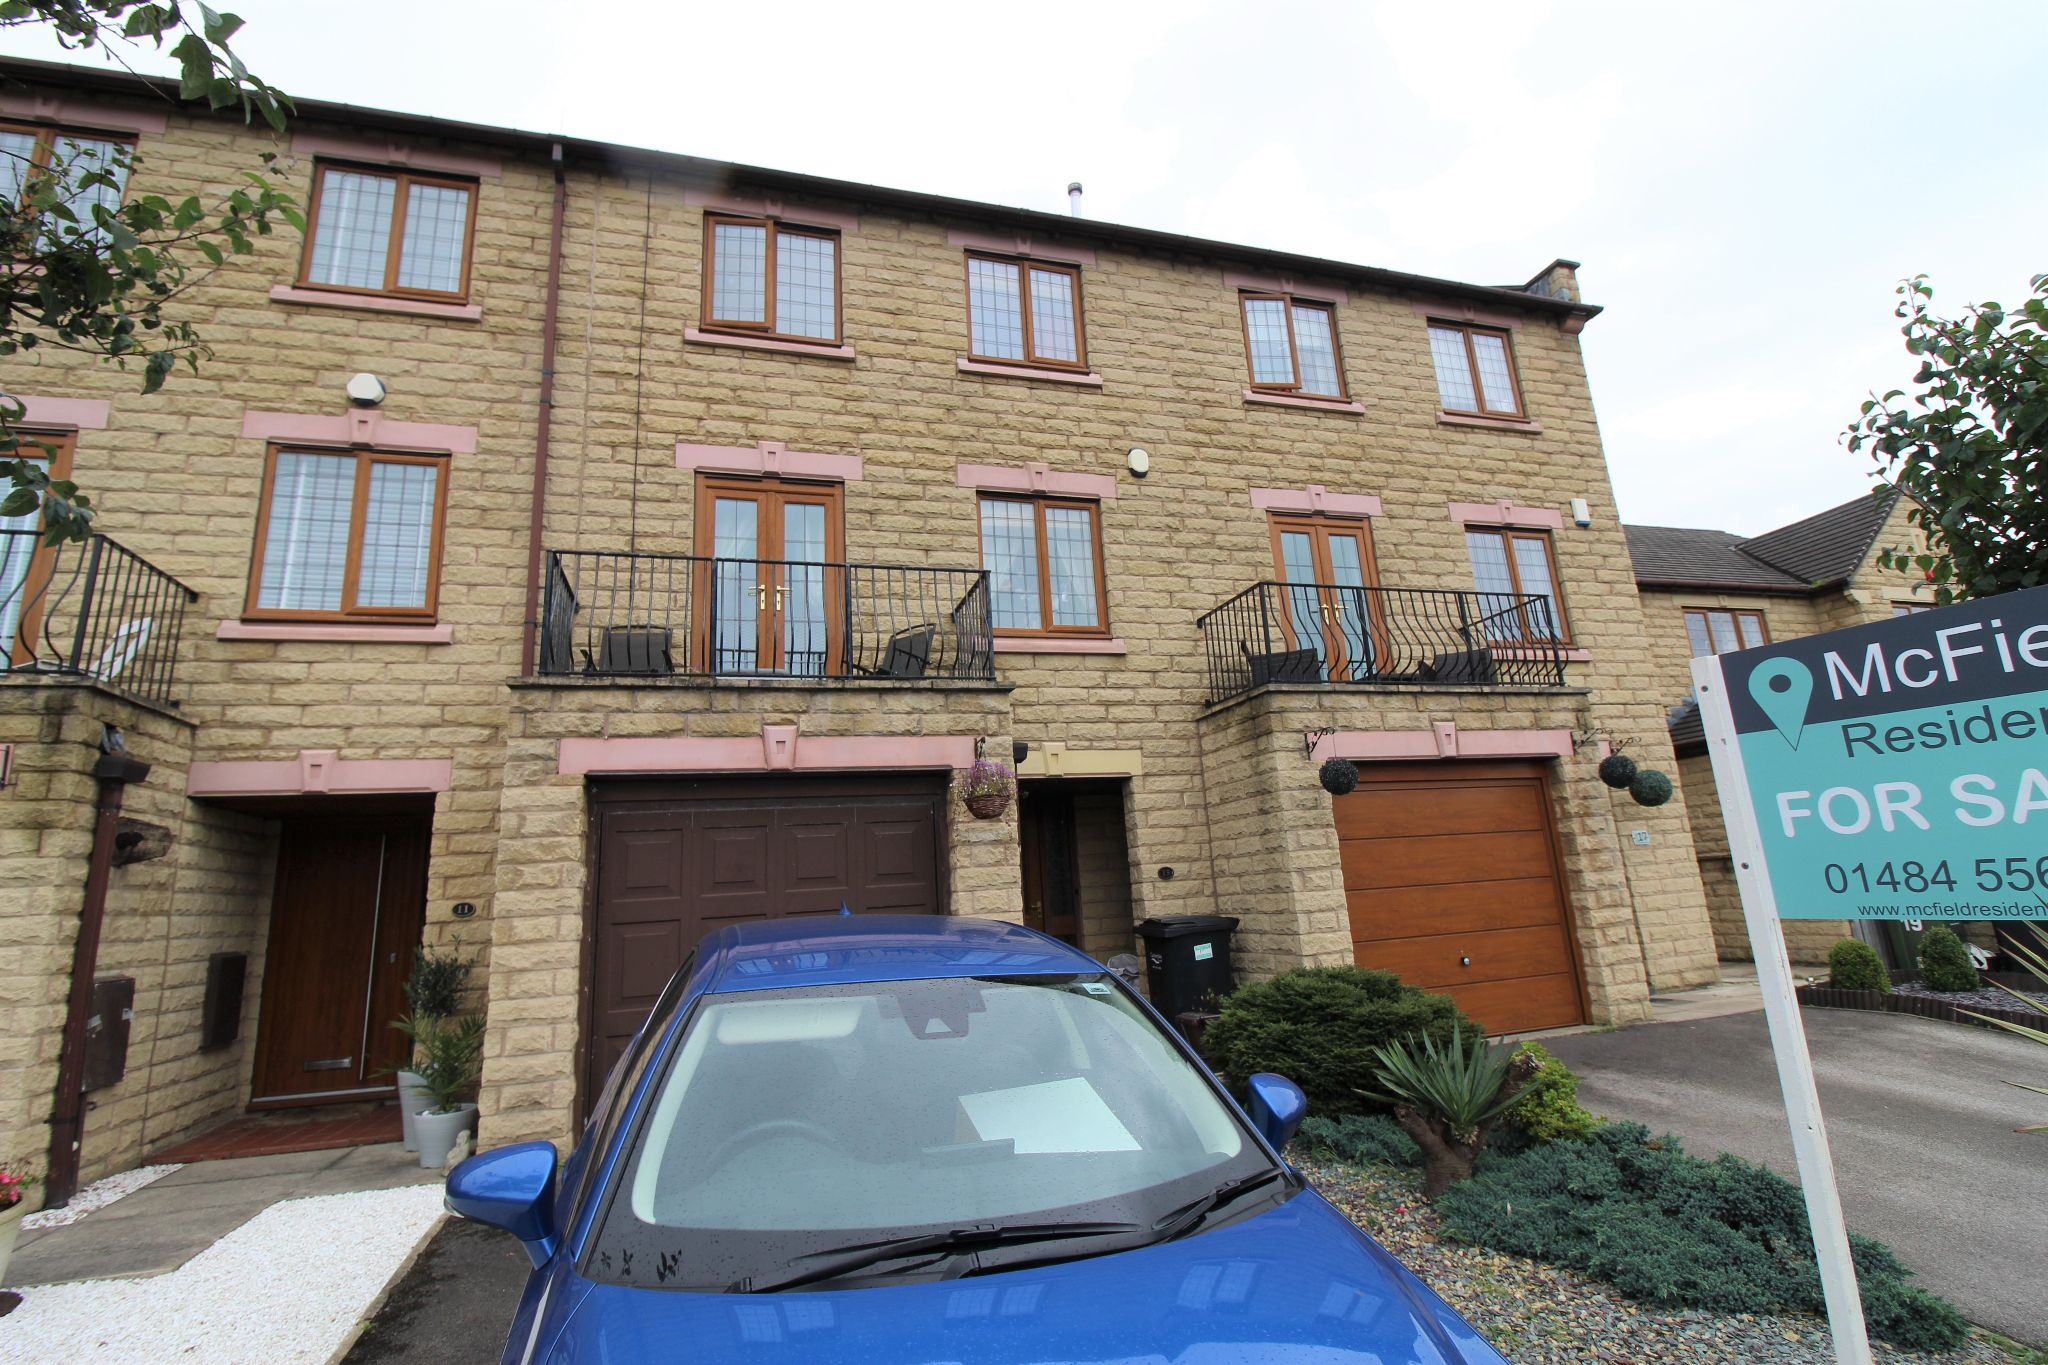 3 bedroom mid terraced house For Sale in Brighouse - Front aspect